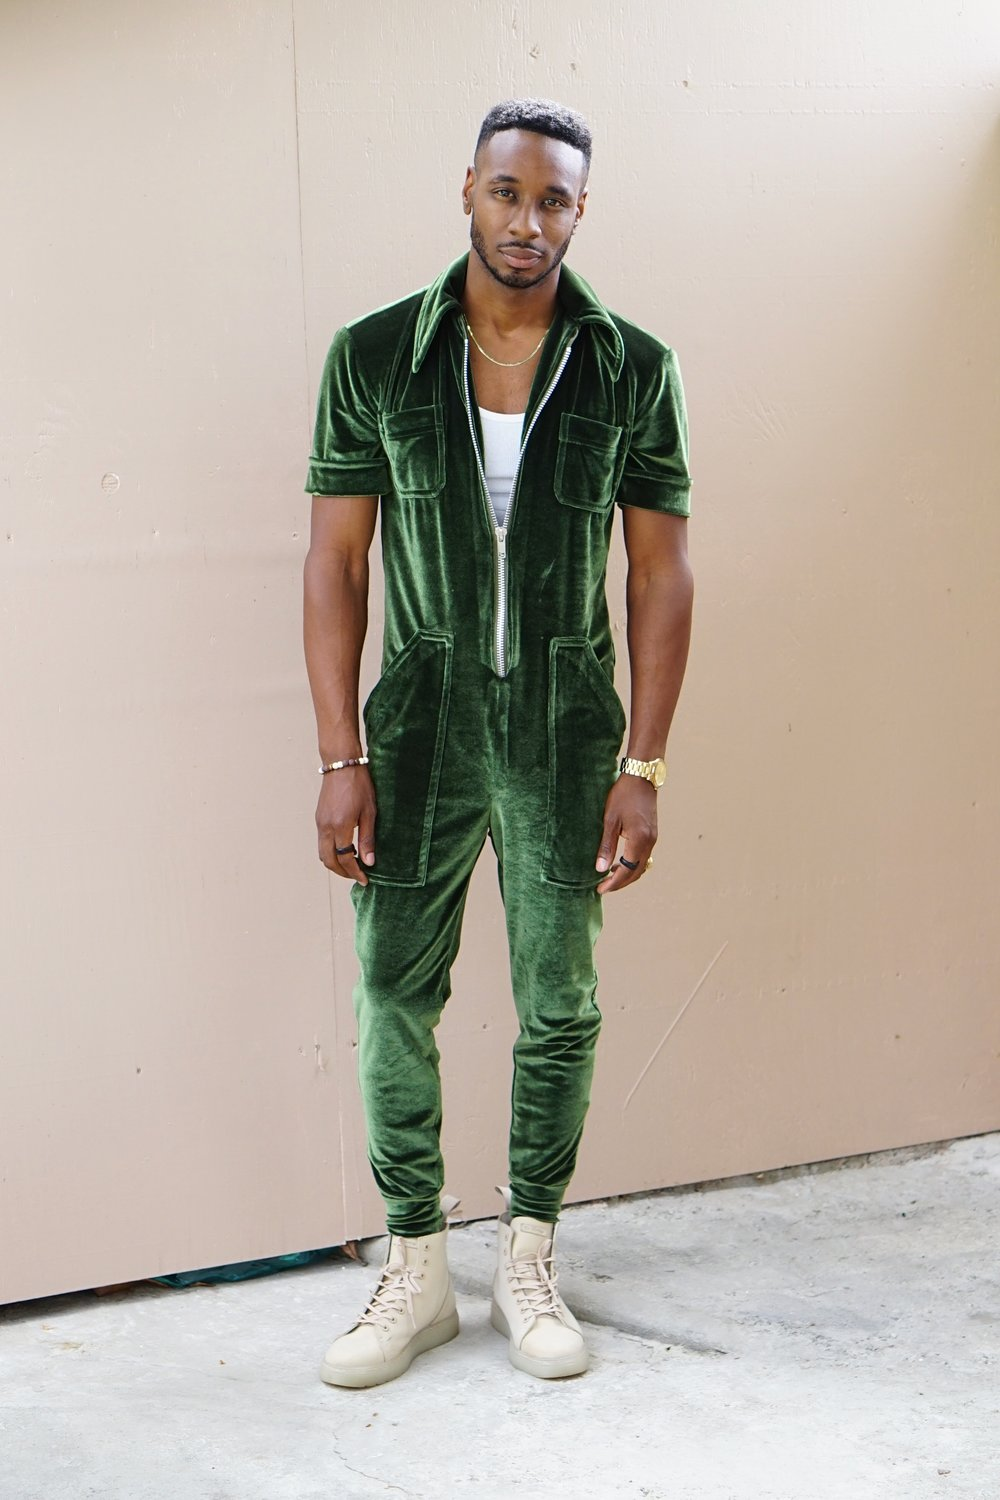 Velvet Green Jumpsuit, Self Made Clothes with Norris Danta Ford